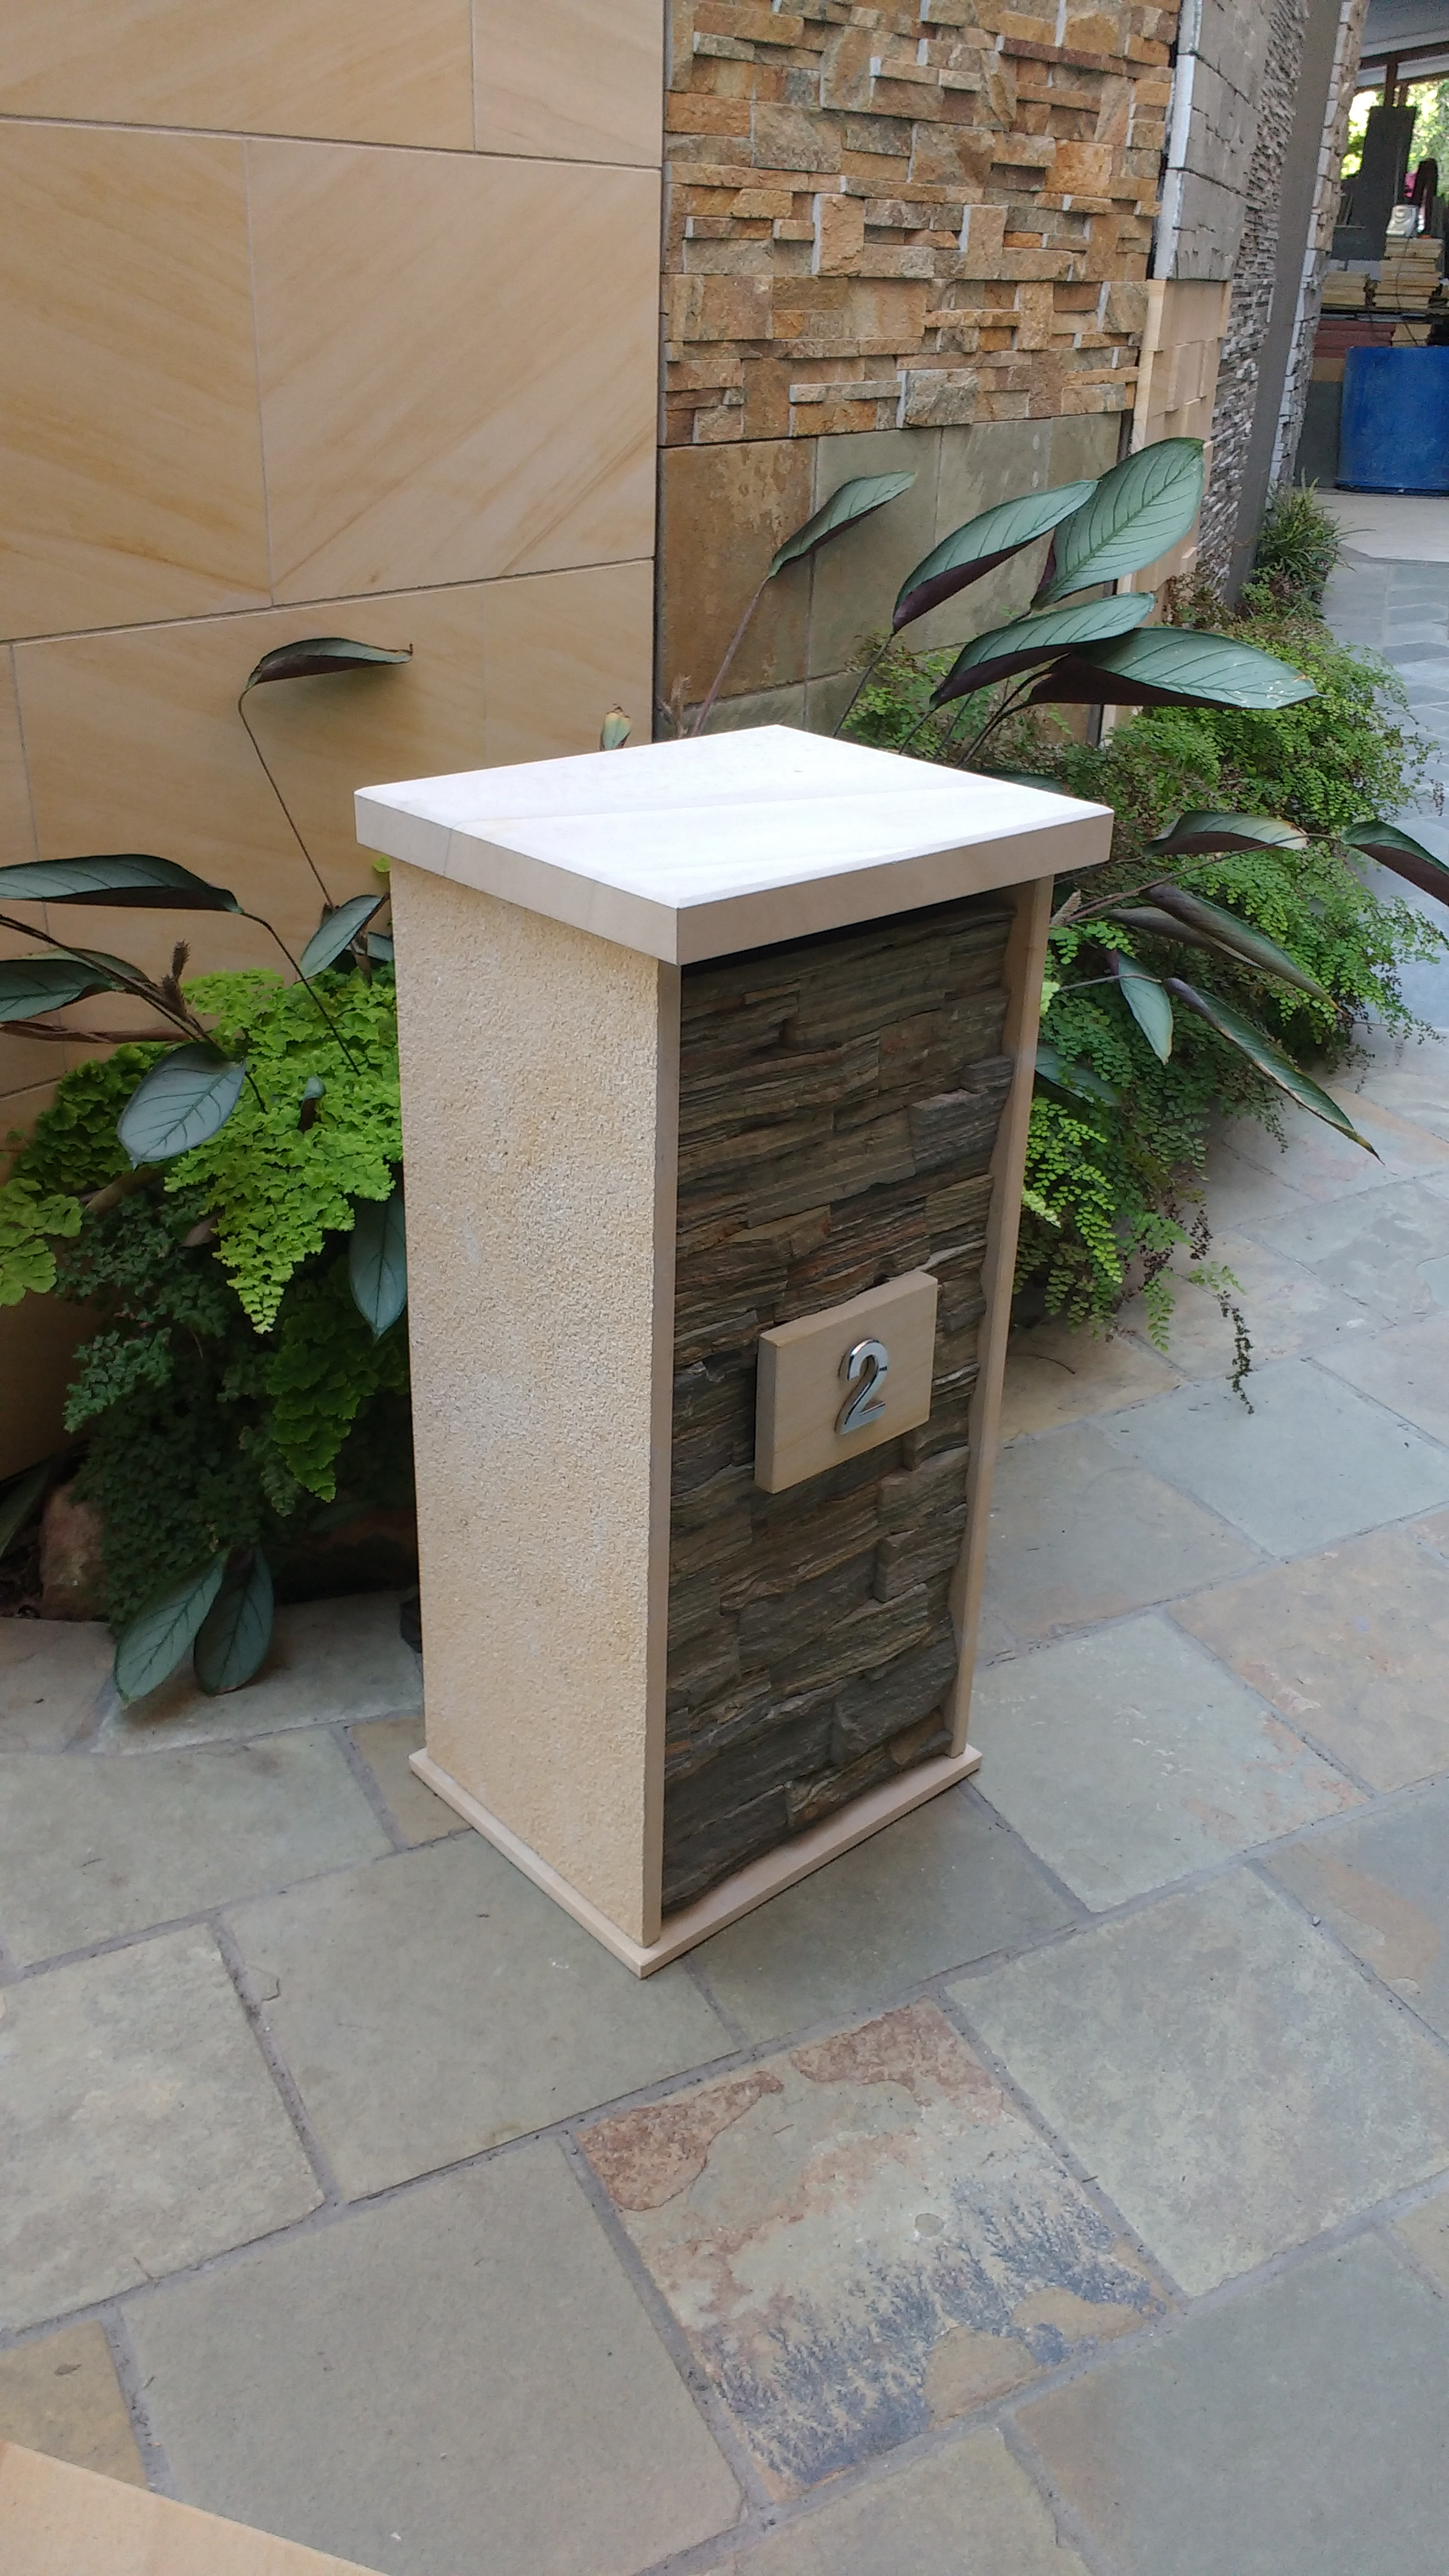 20a. sandstone limestone combination with stacker stone front 860mm high 400mm wide and 350mm deep. Cost $680